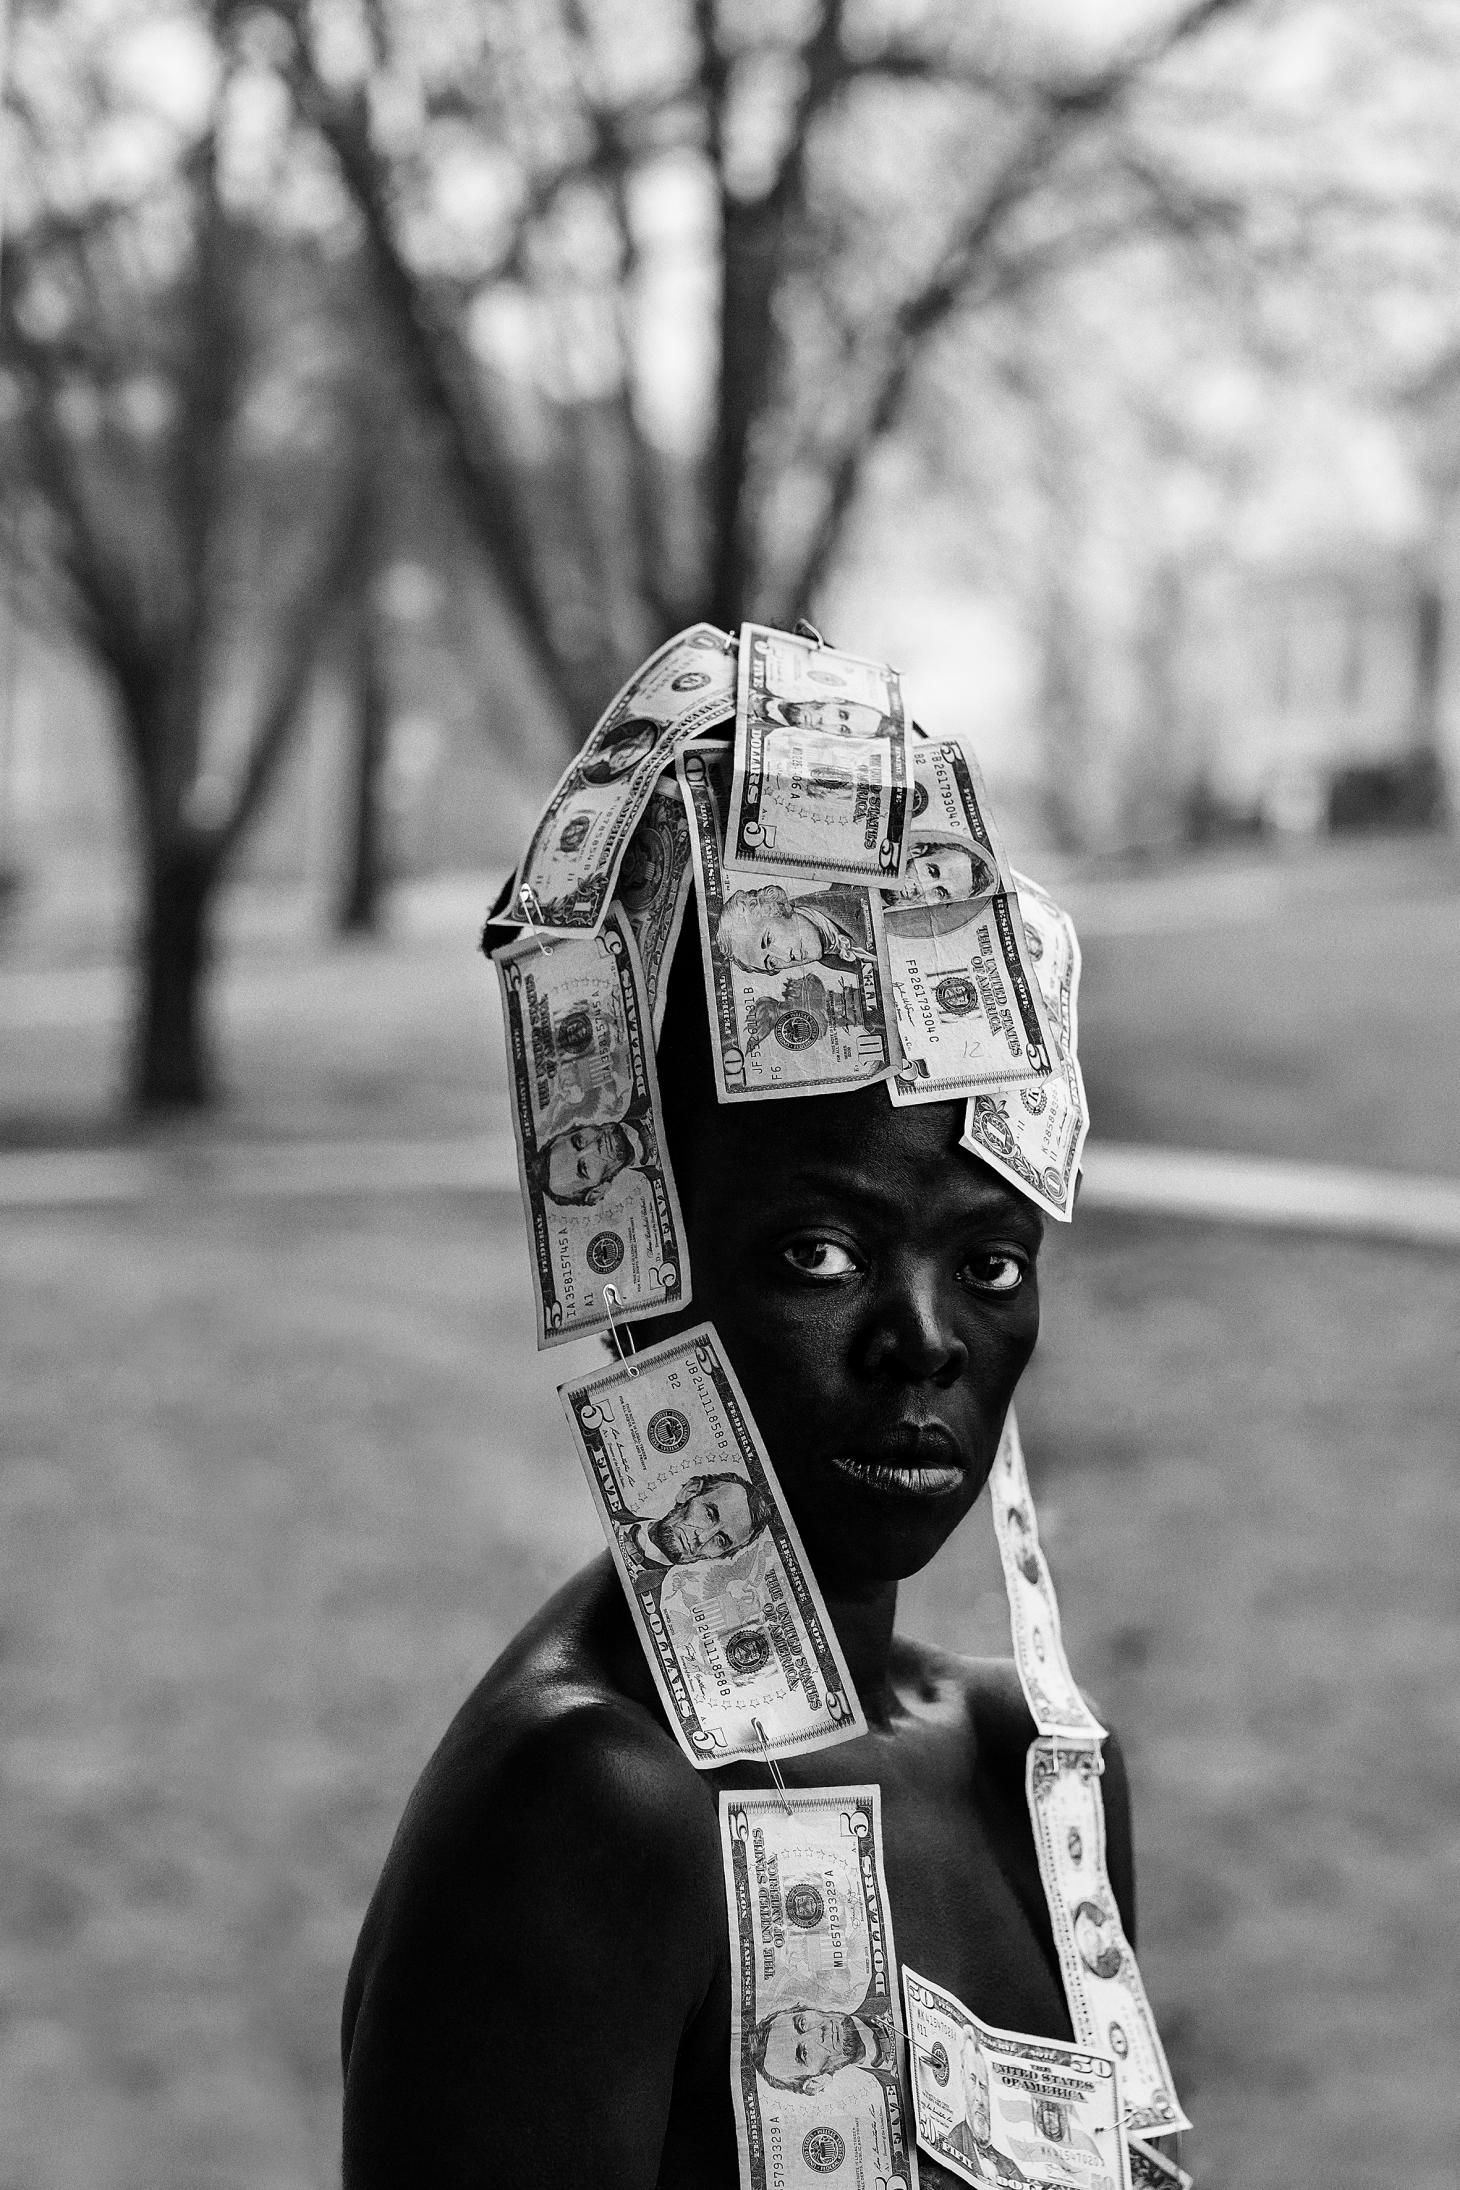 Photograph of a person with a headpiece made out of dollar bills by photographer Zanele Muholi, on display at Photo 2021 Melbourne.